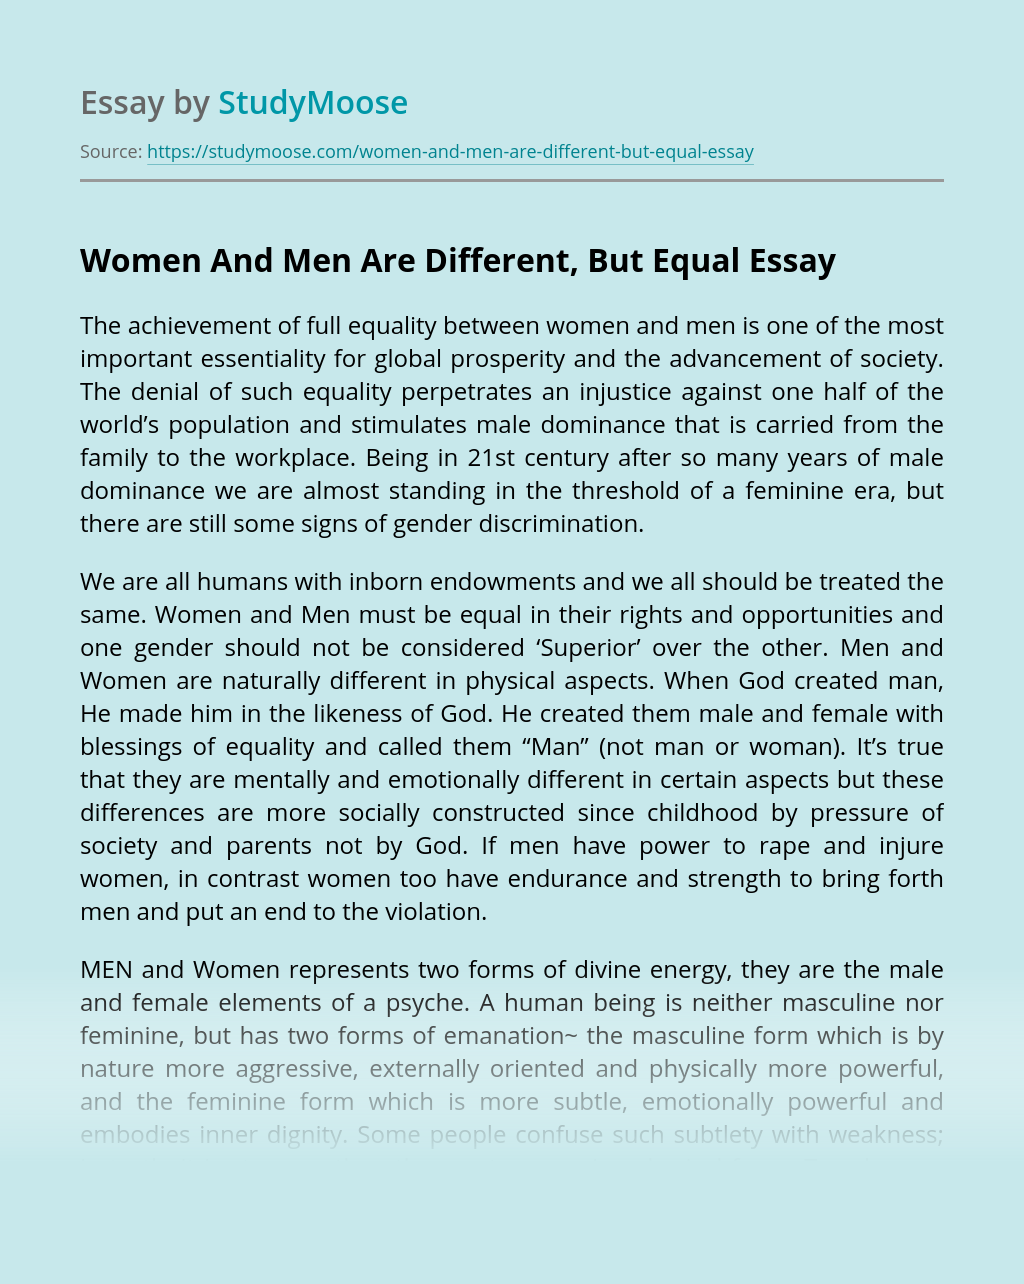 Women And Men Are Different, But Equal